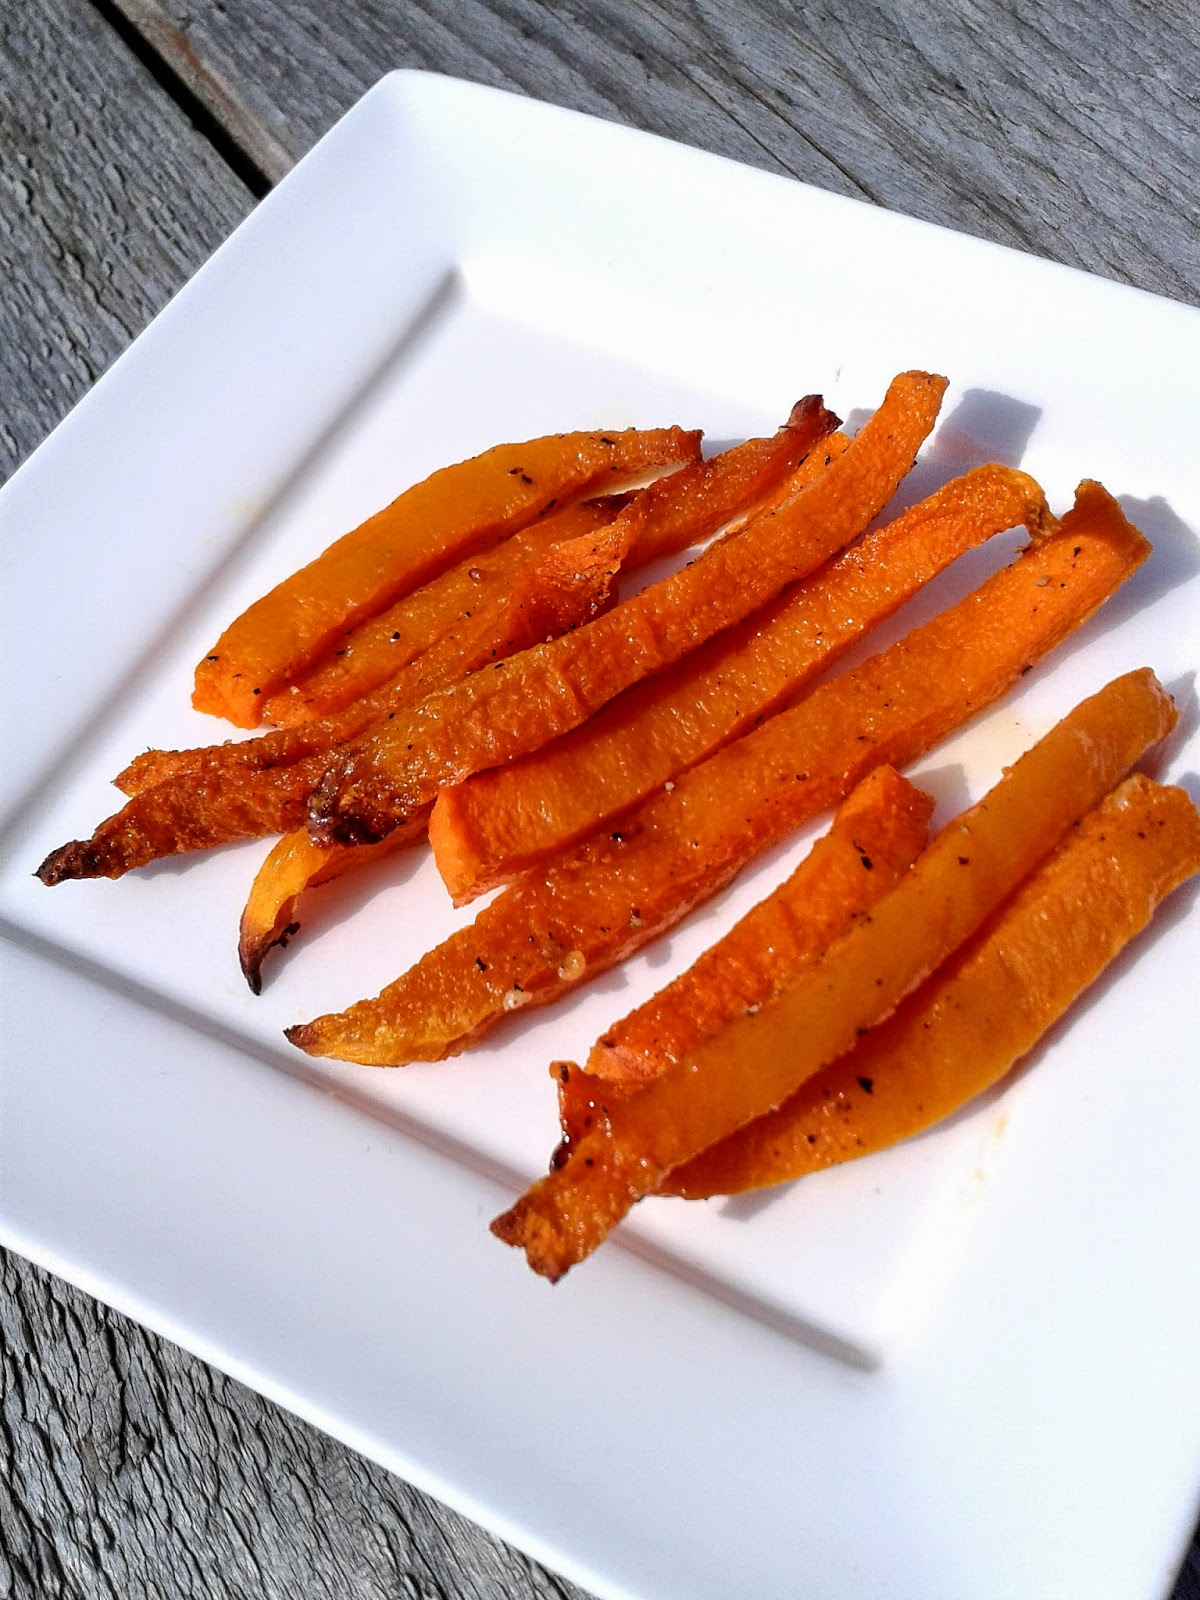 Welcome to Mommyhood Healthy toddler meals: butternut squash fries